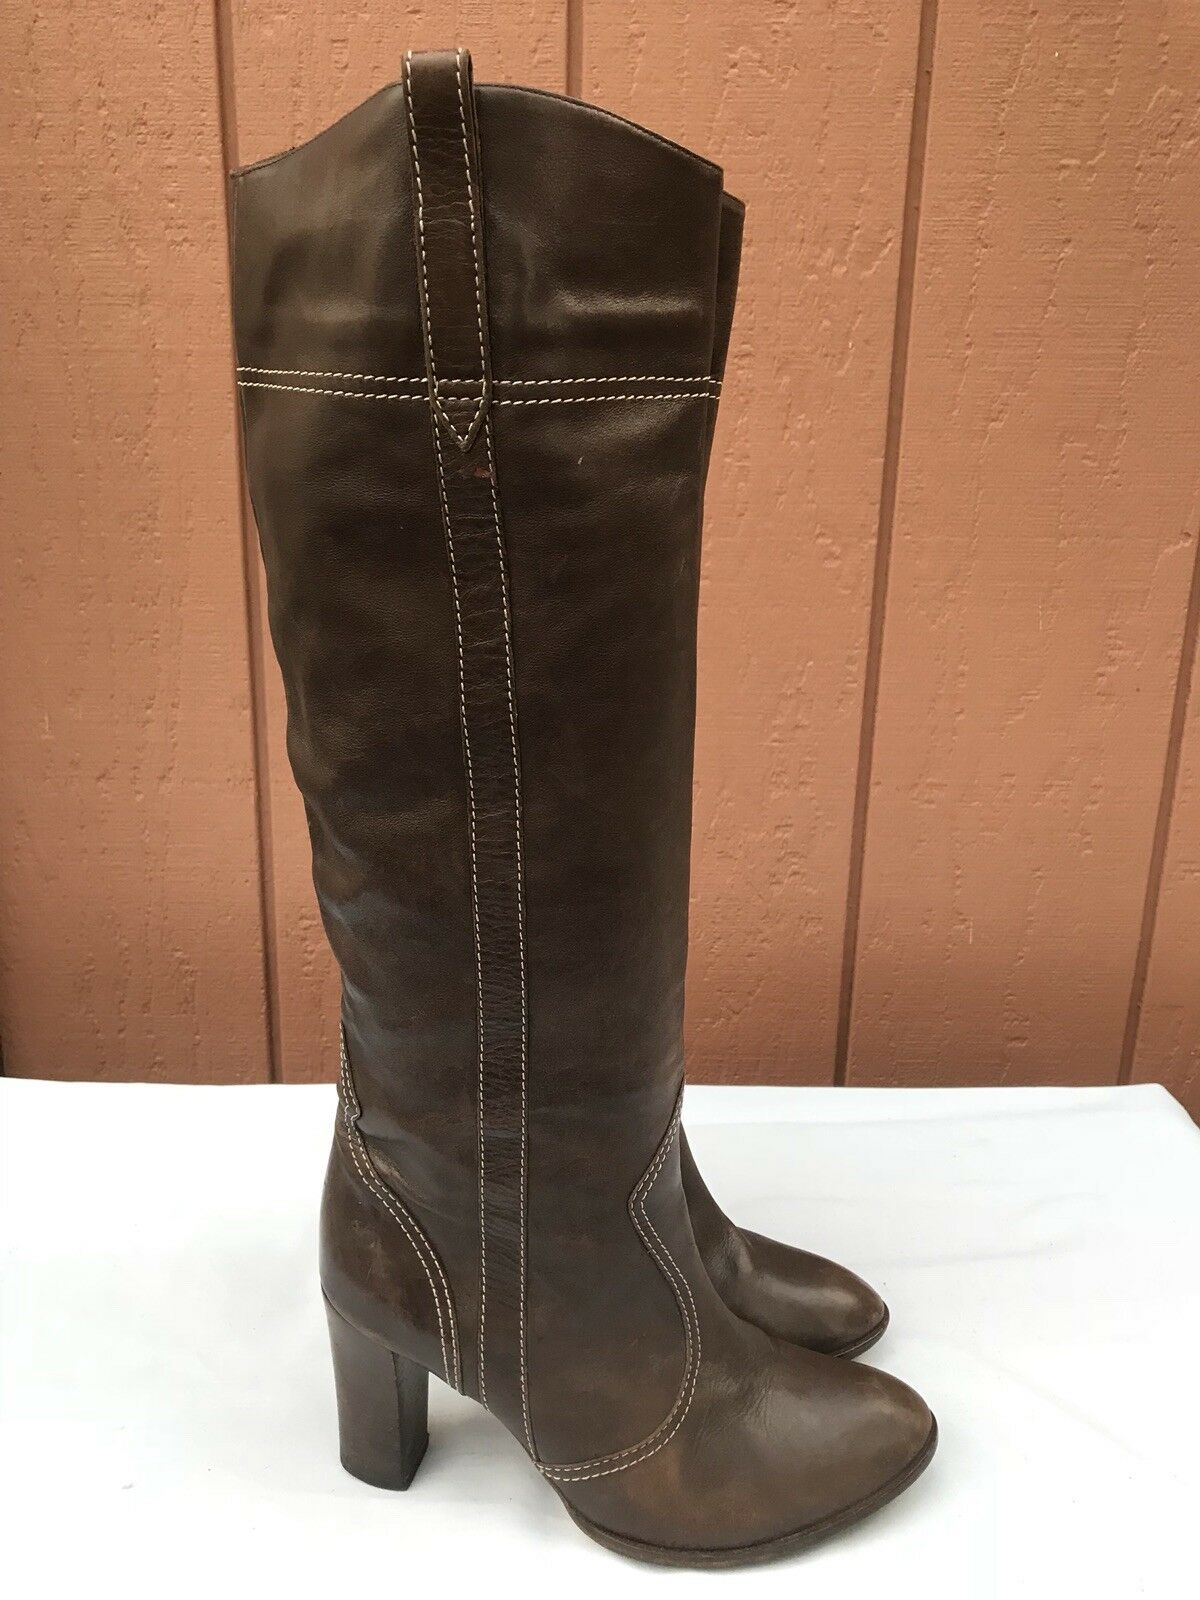 MARC JACOBS Luxe White US 9M Tall Brown Leather Boots White Luxe Topstitching A9 cc5ae6